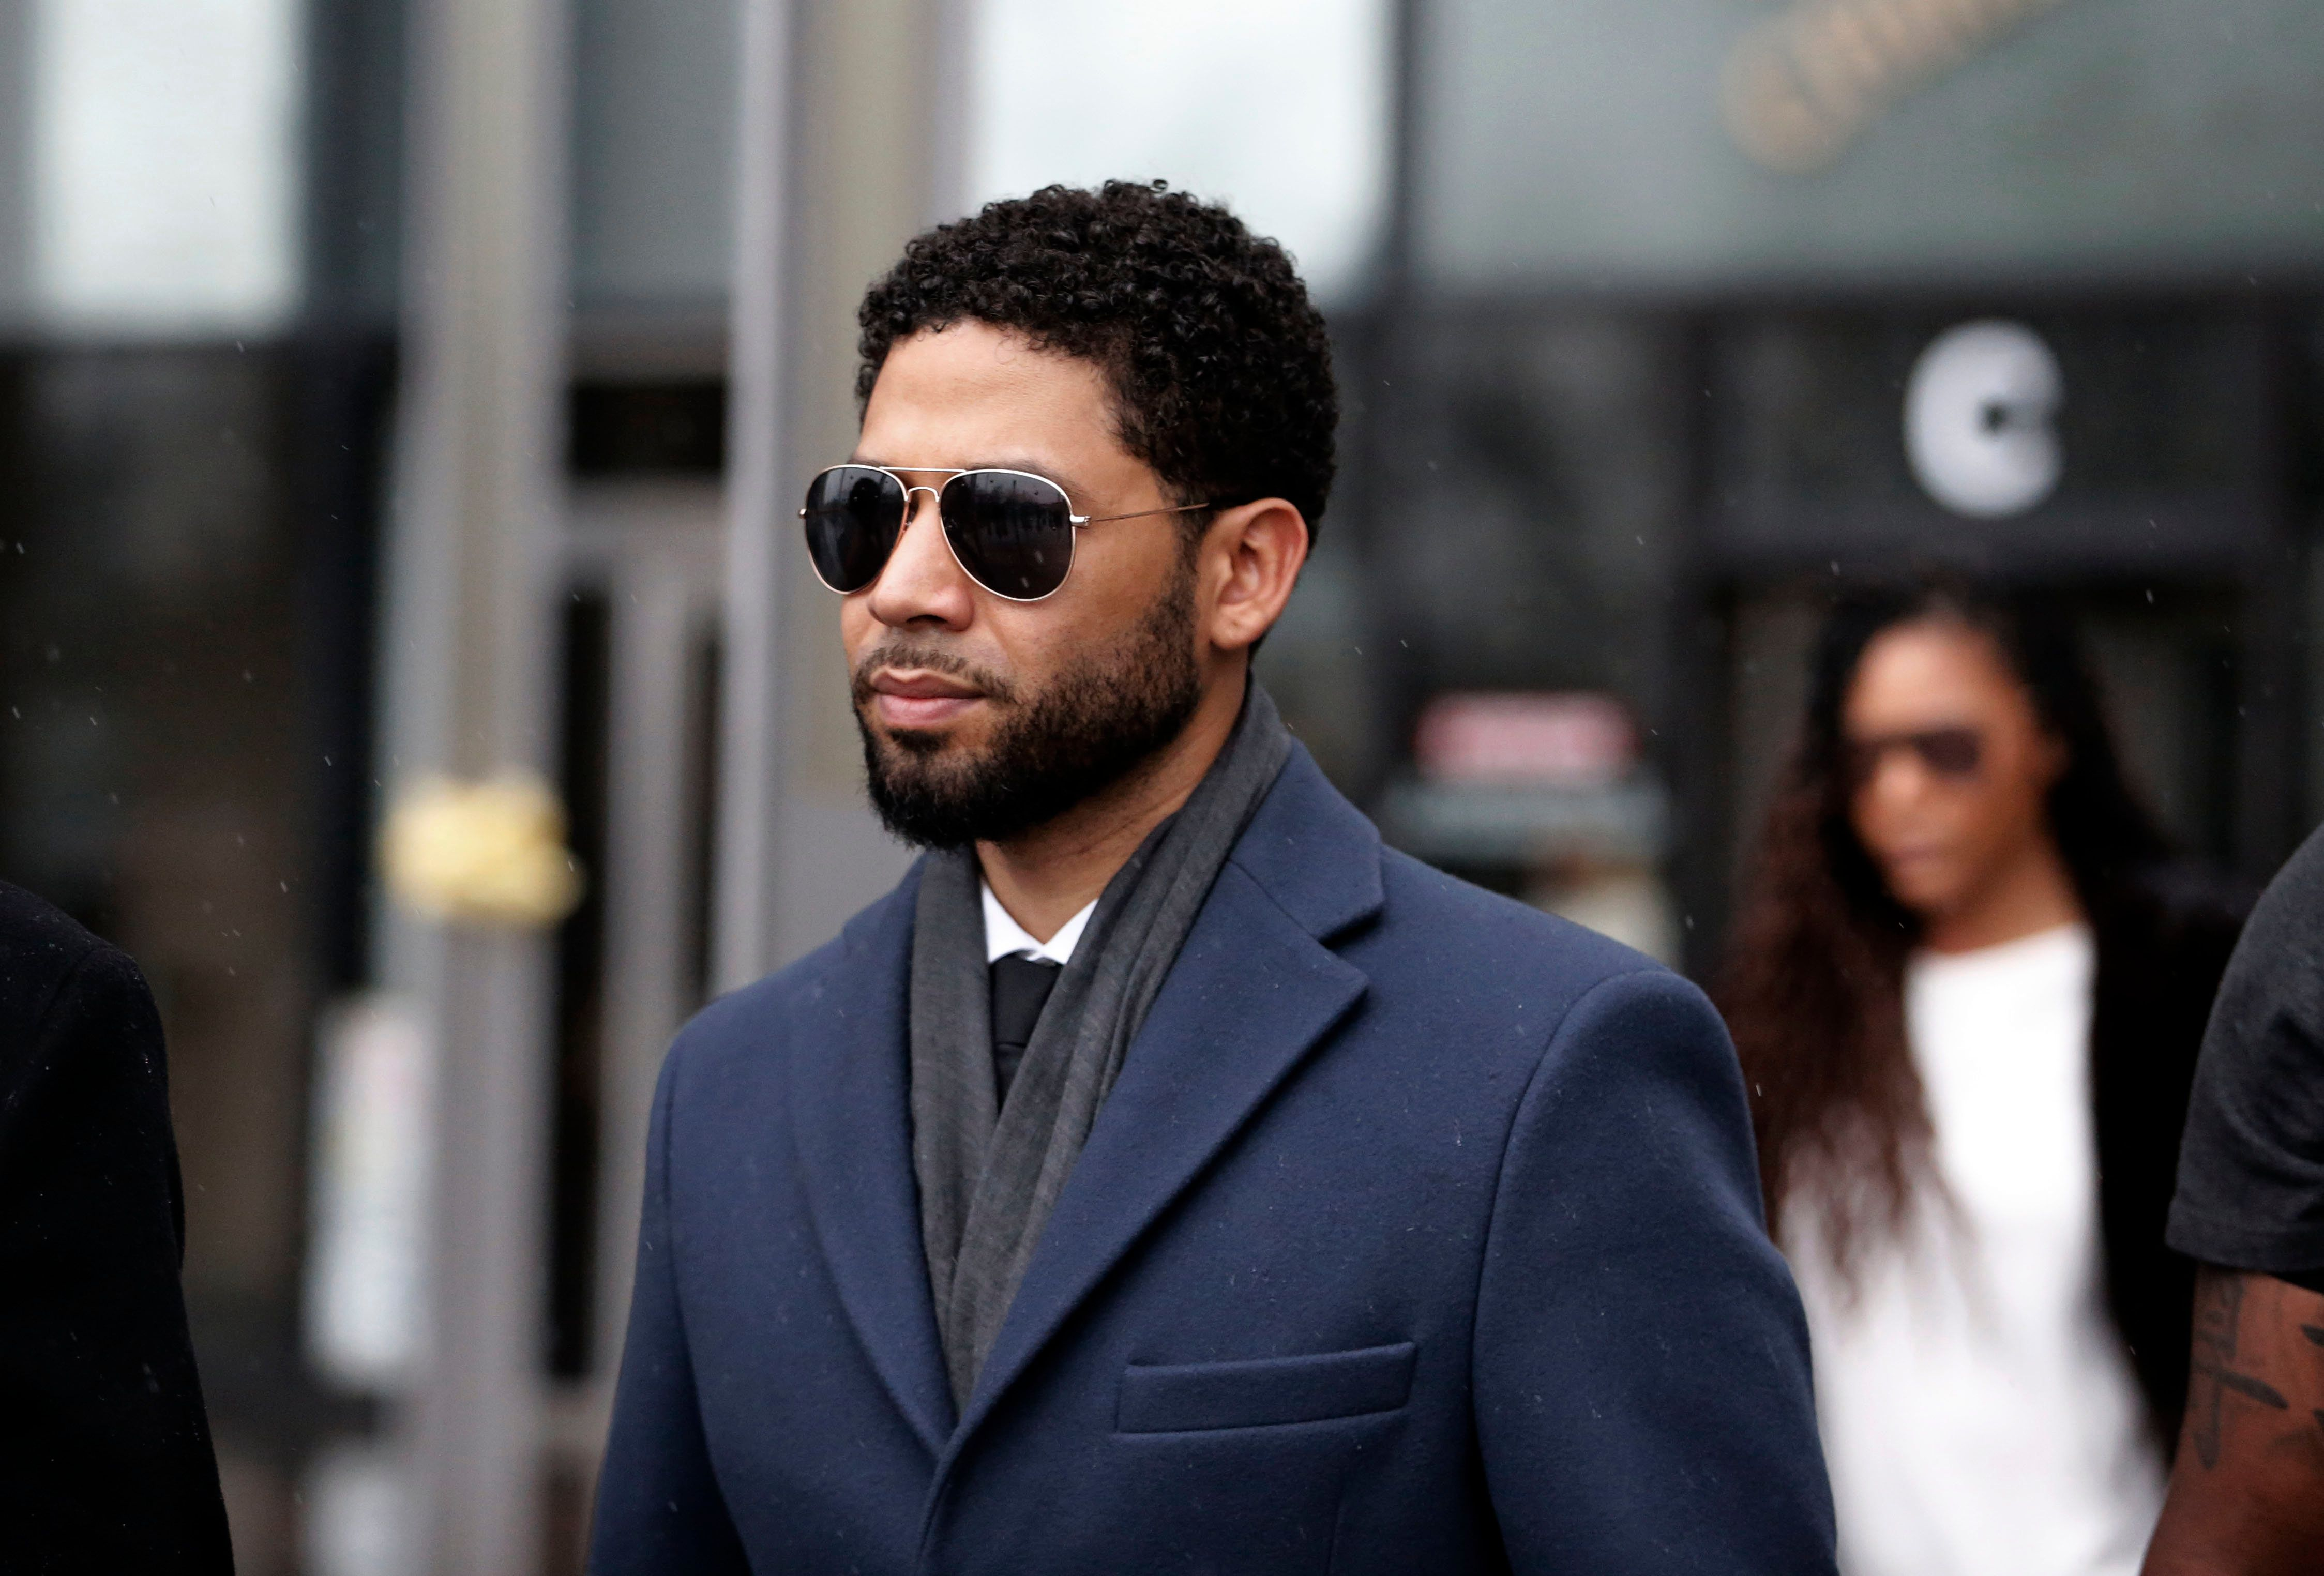 CHICAGO, IL - MARCH 14: Actor Jussie Smollett leaves Leighton Criminal Courthouse after his court appearance on March 14, 2019 in Chicago, Illinois. Smollett stands accused of arranging a homophobic, racist attack against himself in an attempt to raise his profile because he was dissatisfied with his salary on the Fox television drama 'Empire.'  (Photo by Nuccio DiNuzzo/Getty Images)